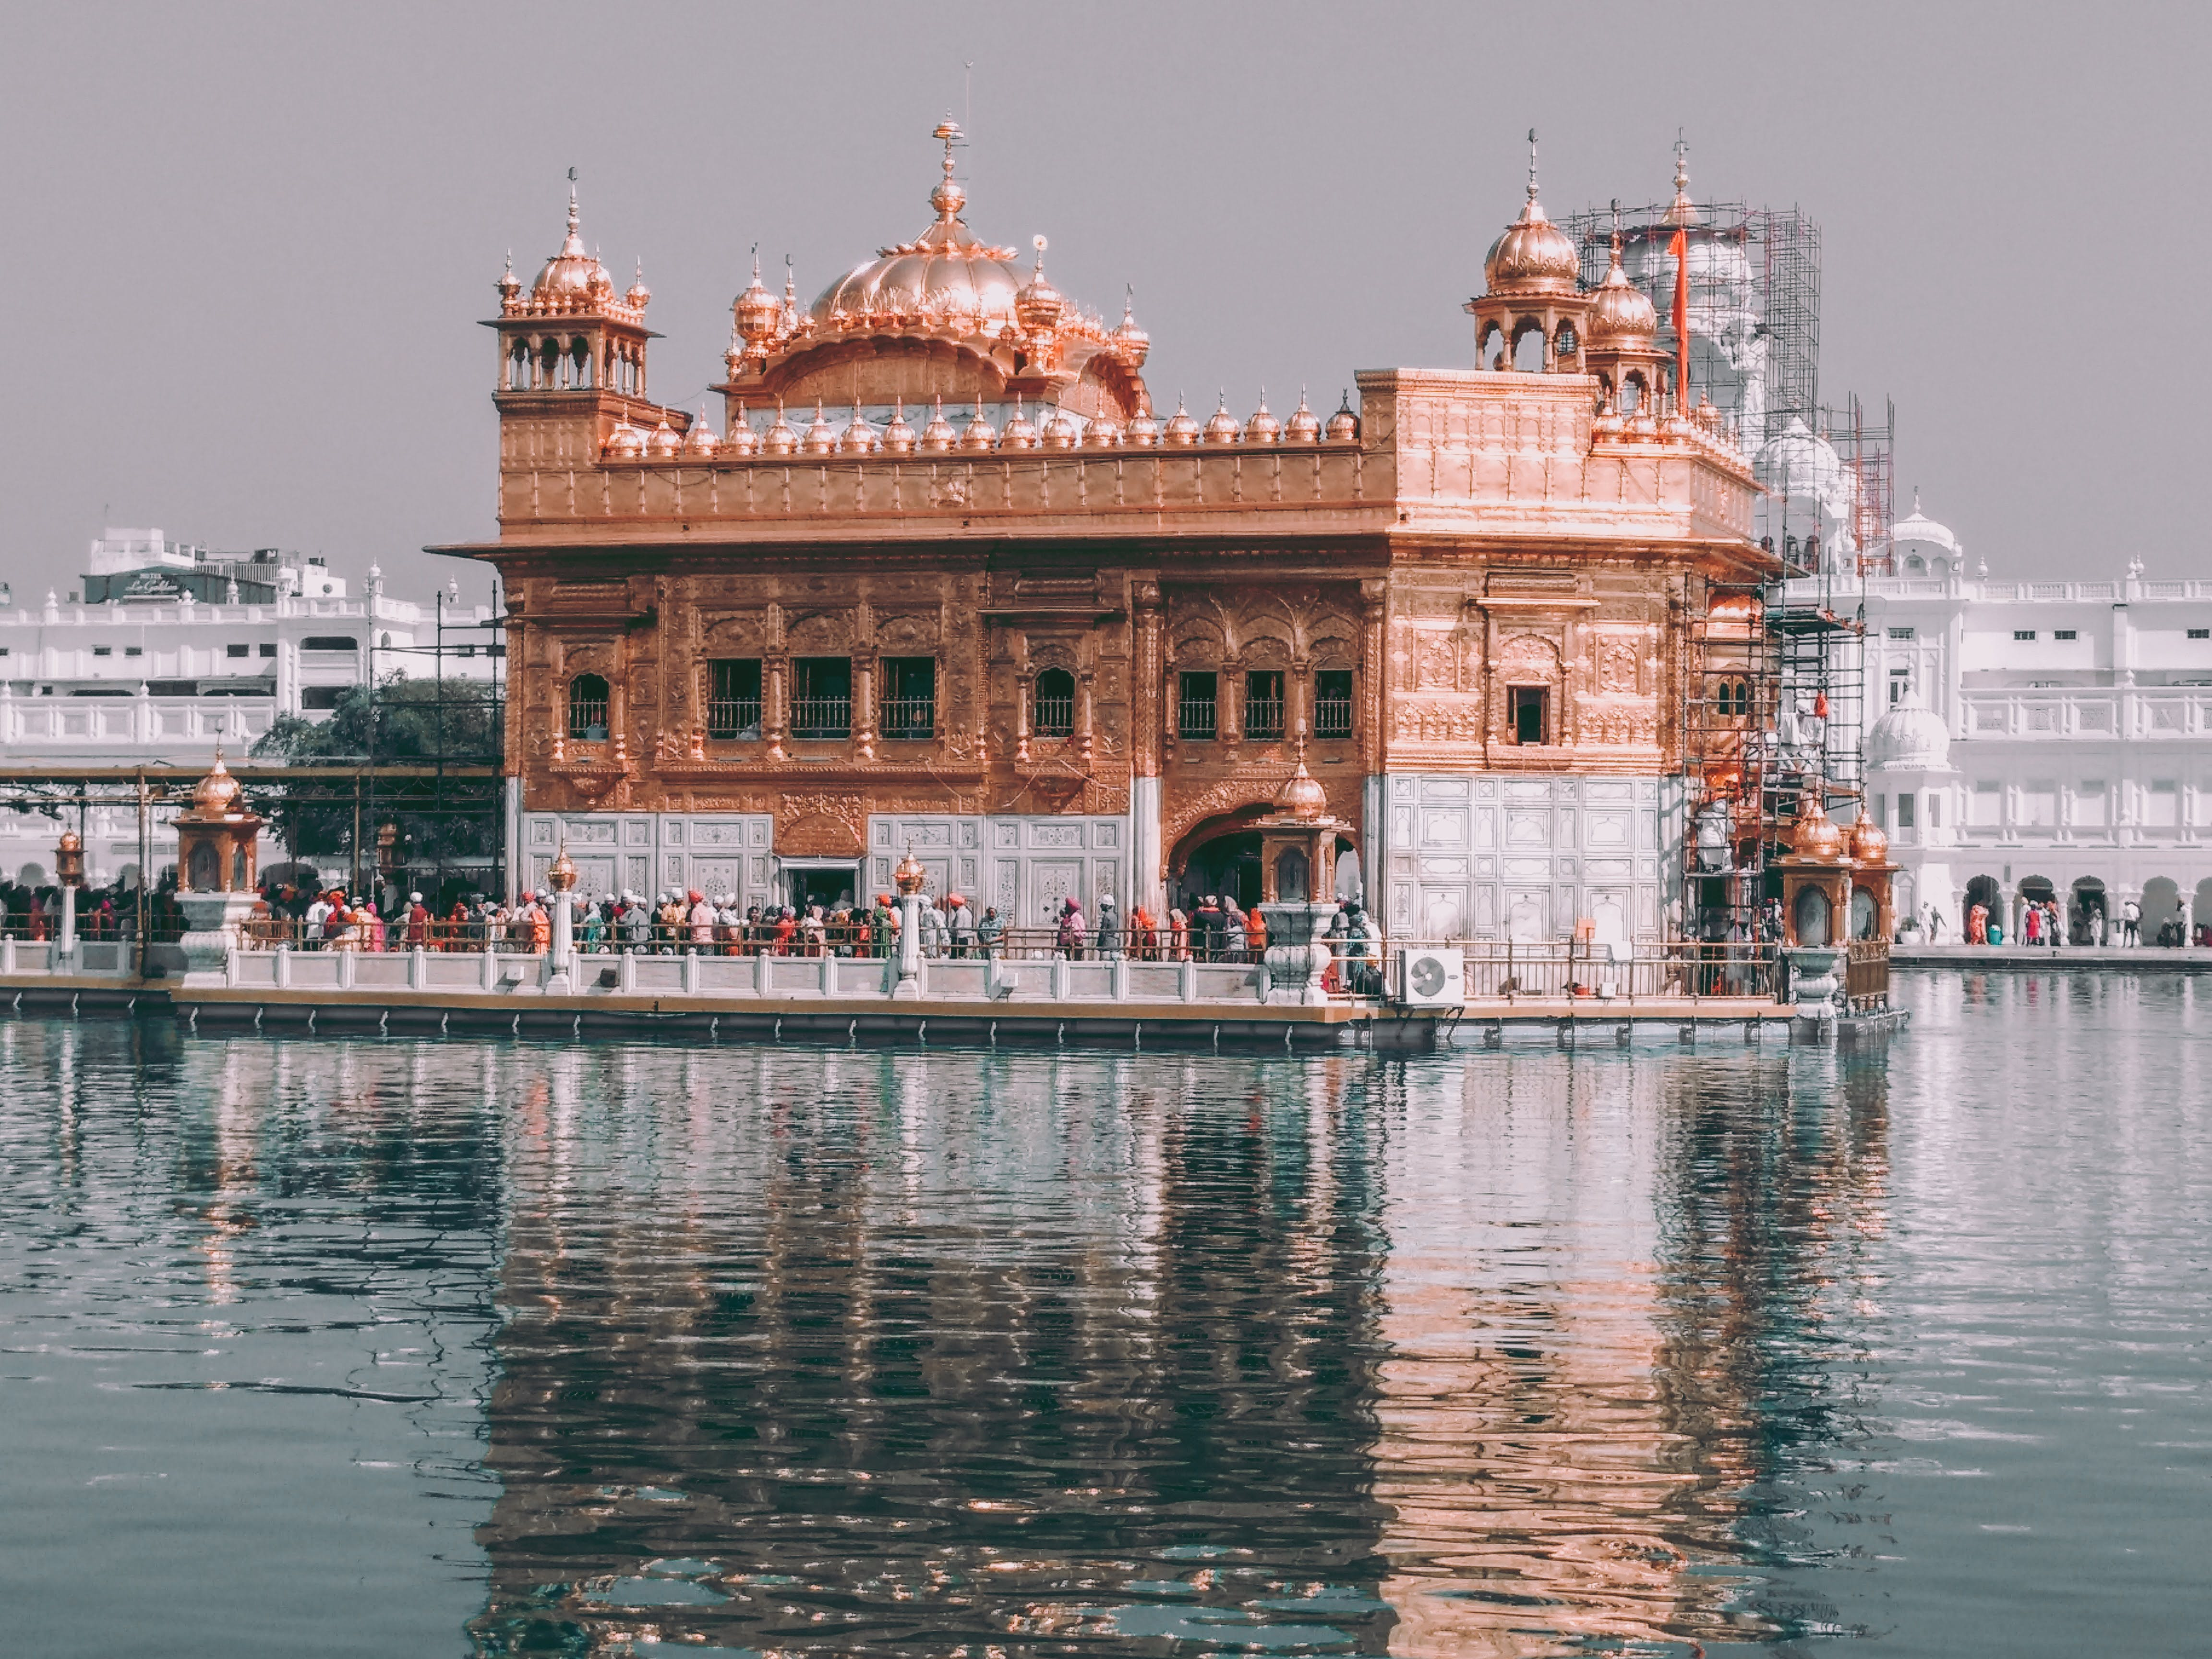 Free stock photo of Golden Temple, india, travel destination